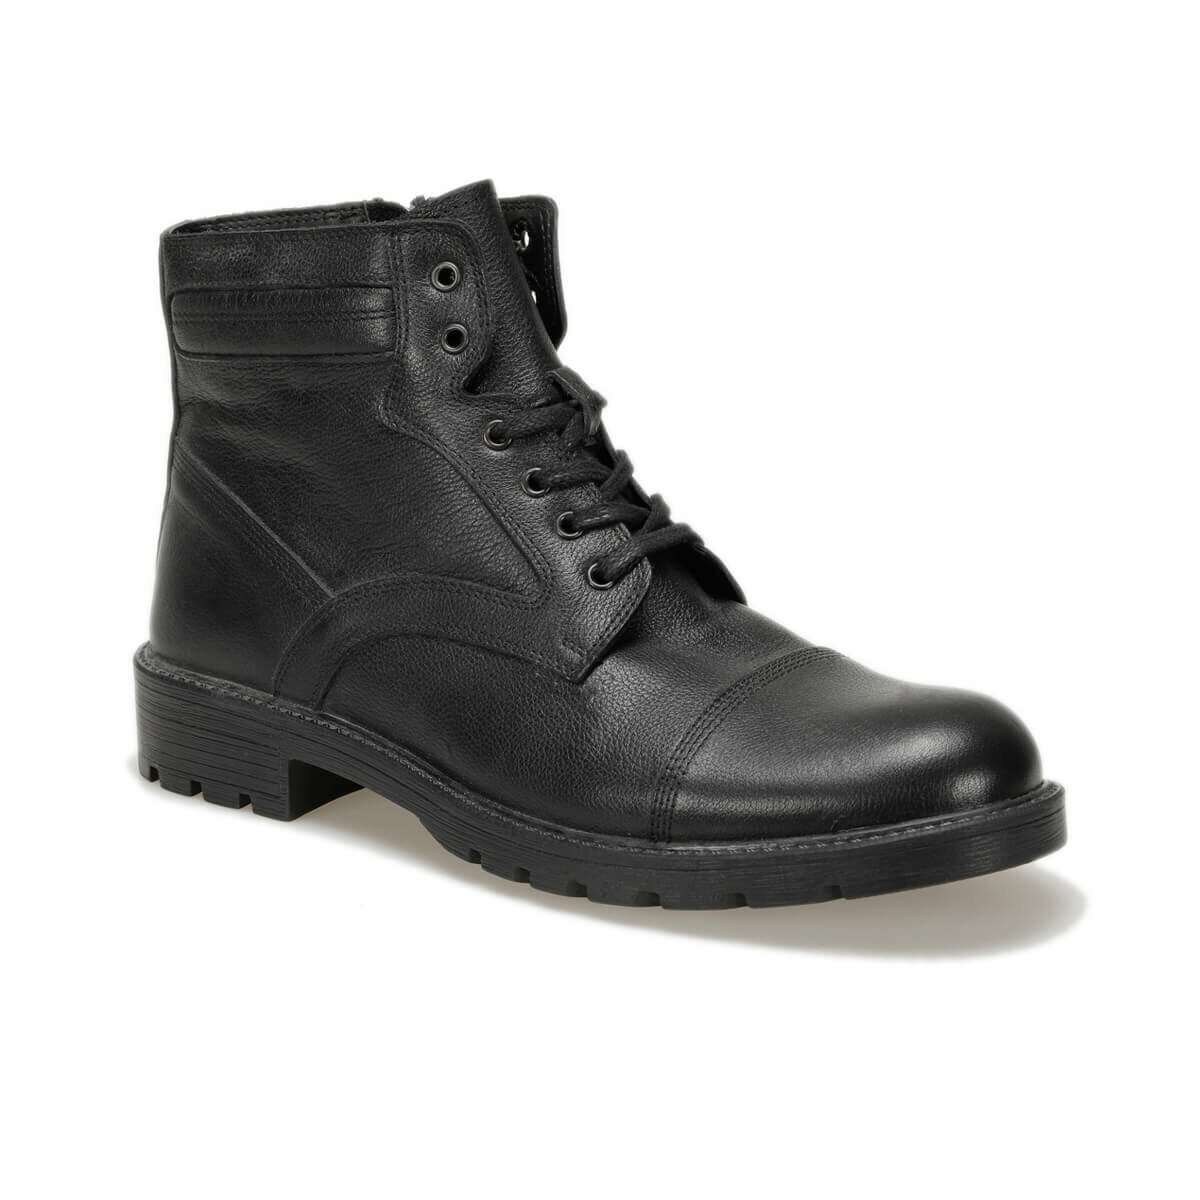 FLO 016 Black Men Boots Oxide